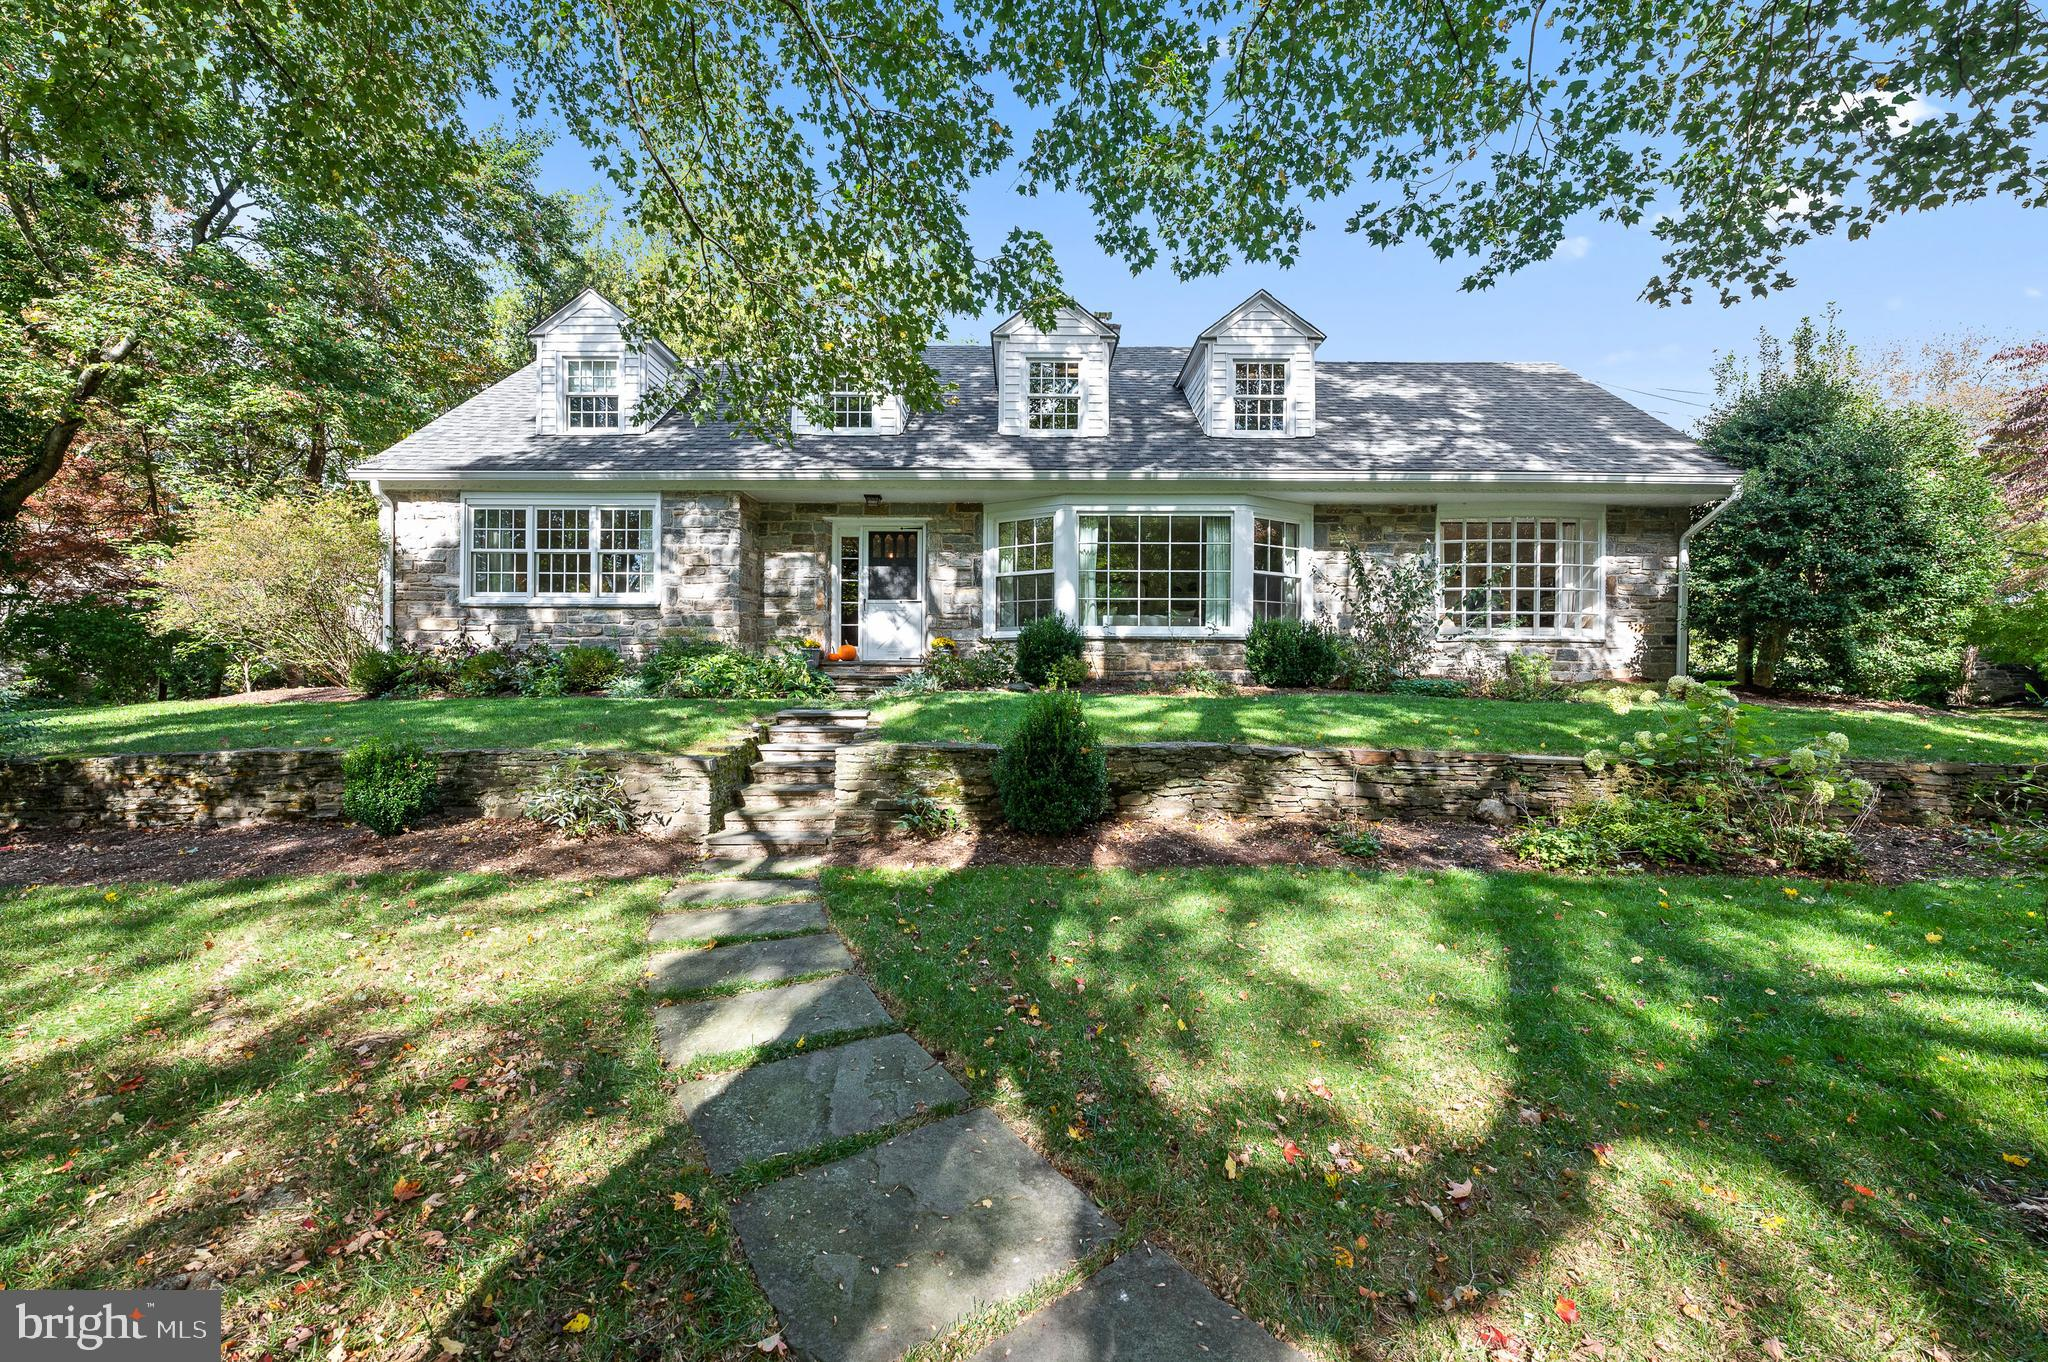 Set in one of Wynnewood's most desired neighborhoods this charming sun lit stone cape cod will delight.  A flagstone walkway and stone garden wall lead you to the front door where you are greeted by hardwood floors, lots of windows allowing for sunny spaces and an appealing spacious layout with first floor primary suite.  The living room is wood paneled with a wood burning fireplace and a large wall of windows bringing the outside in! The dining room is light and bright and connects to the eat in kitchen which has great flow and is ready for your updates! The kitchen has an island and  a breakfast room sitting area. The laundry/mud room and pantry are adjacent to the kitchen. The family room is a cozy spot perfect for reading a book with Navy paneling, a wood burning fireplace, built-in bookshelves, and large windows overlooking the lush backyard and access to the back patio.  A charming powder room with white penny tile flooring is also conveniently located off of the family room.  A large Light Filled Main floor Primary suite is situated off the main foyer and features three closets and a full bath with double sinks and tub/shower. Upstairs there are hardwood floors throughout, a bedroom suite with full bath, and two additional spacious bedrooms sharing a hall bath, a cedar closet and a large storage area.  The lower level is a delightful space fully finished with a large recreation area and home theater, there is space for a gym, play room or home office and additional storage.  A detached 2 car garage and a lush backyard with raised bed garden complete with flagstone patio allow for expanded indoor/outdoor living.  With a new roof and gutters, newer HVAC, and Water heater this solid home is practically worry free!  Don't miss your opportunity to live in  Award Winning Lower Merion School District set in the most convenient location within walking distance to the train, bus, Wholefoods and shopping!